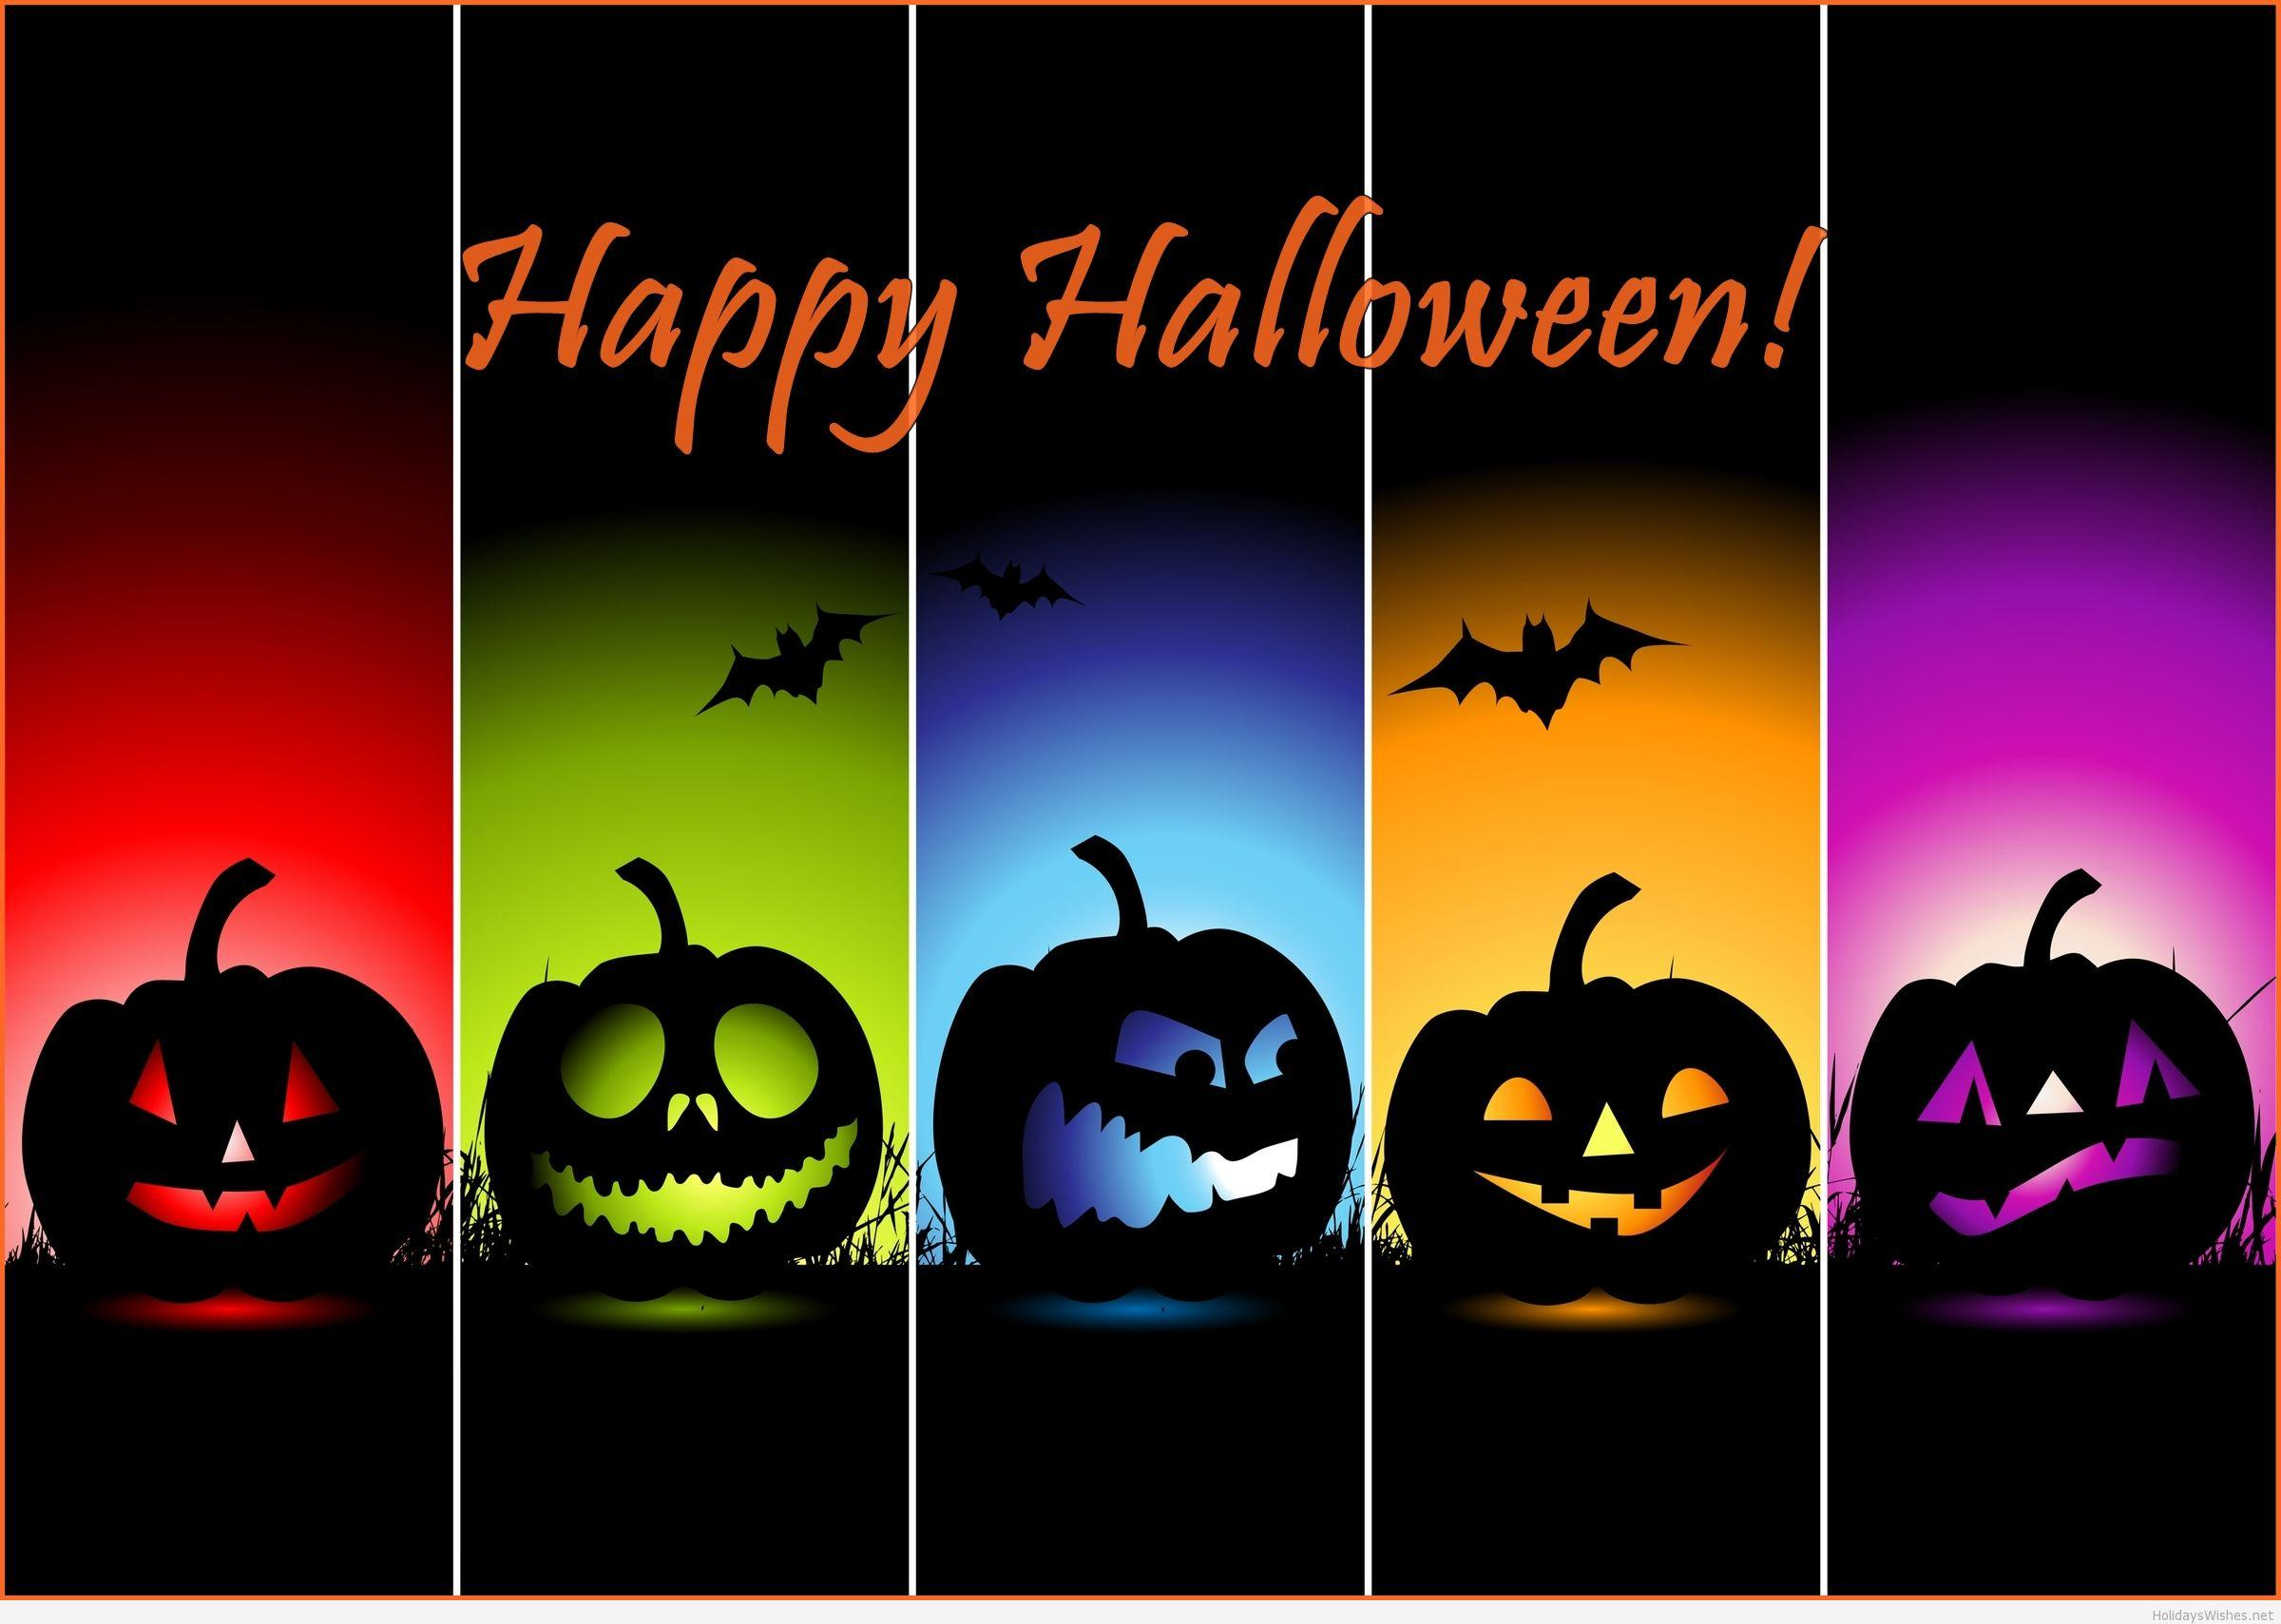 Free Download Funny Halloween Wallpapers 2400x1709 For Your Desktop Mobile Tablet Explore 72 Funny Halloween Backgrounds Funny Halloween Backgrounds Funny Halloween Wallpaper Funny Halloween Wallpapers